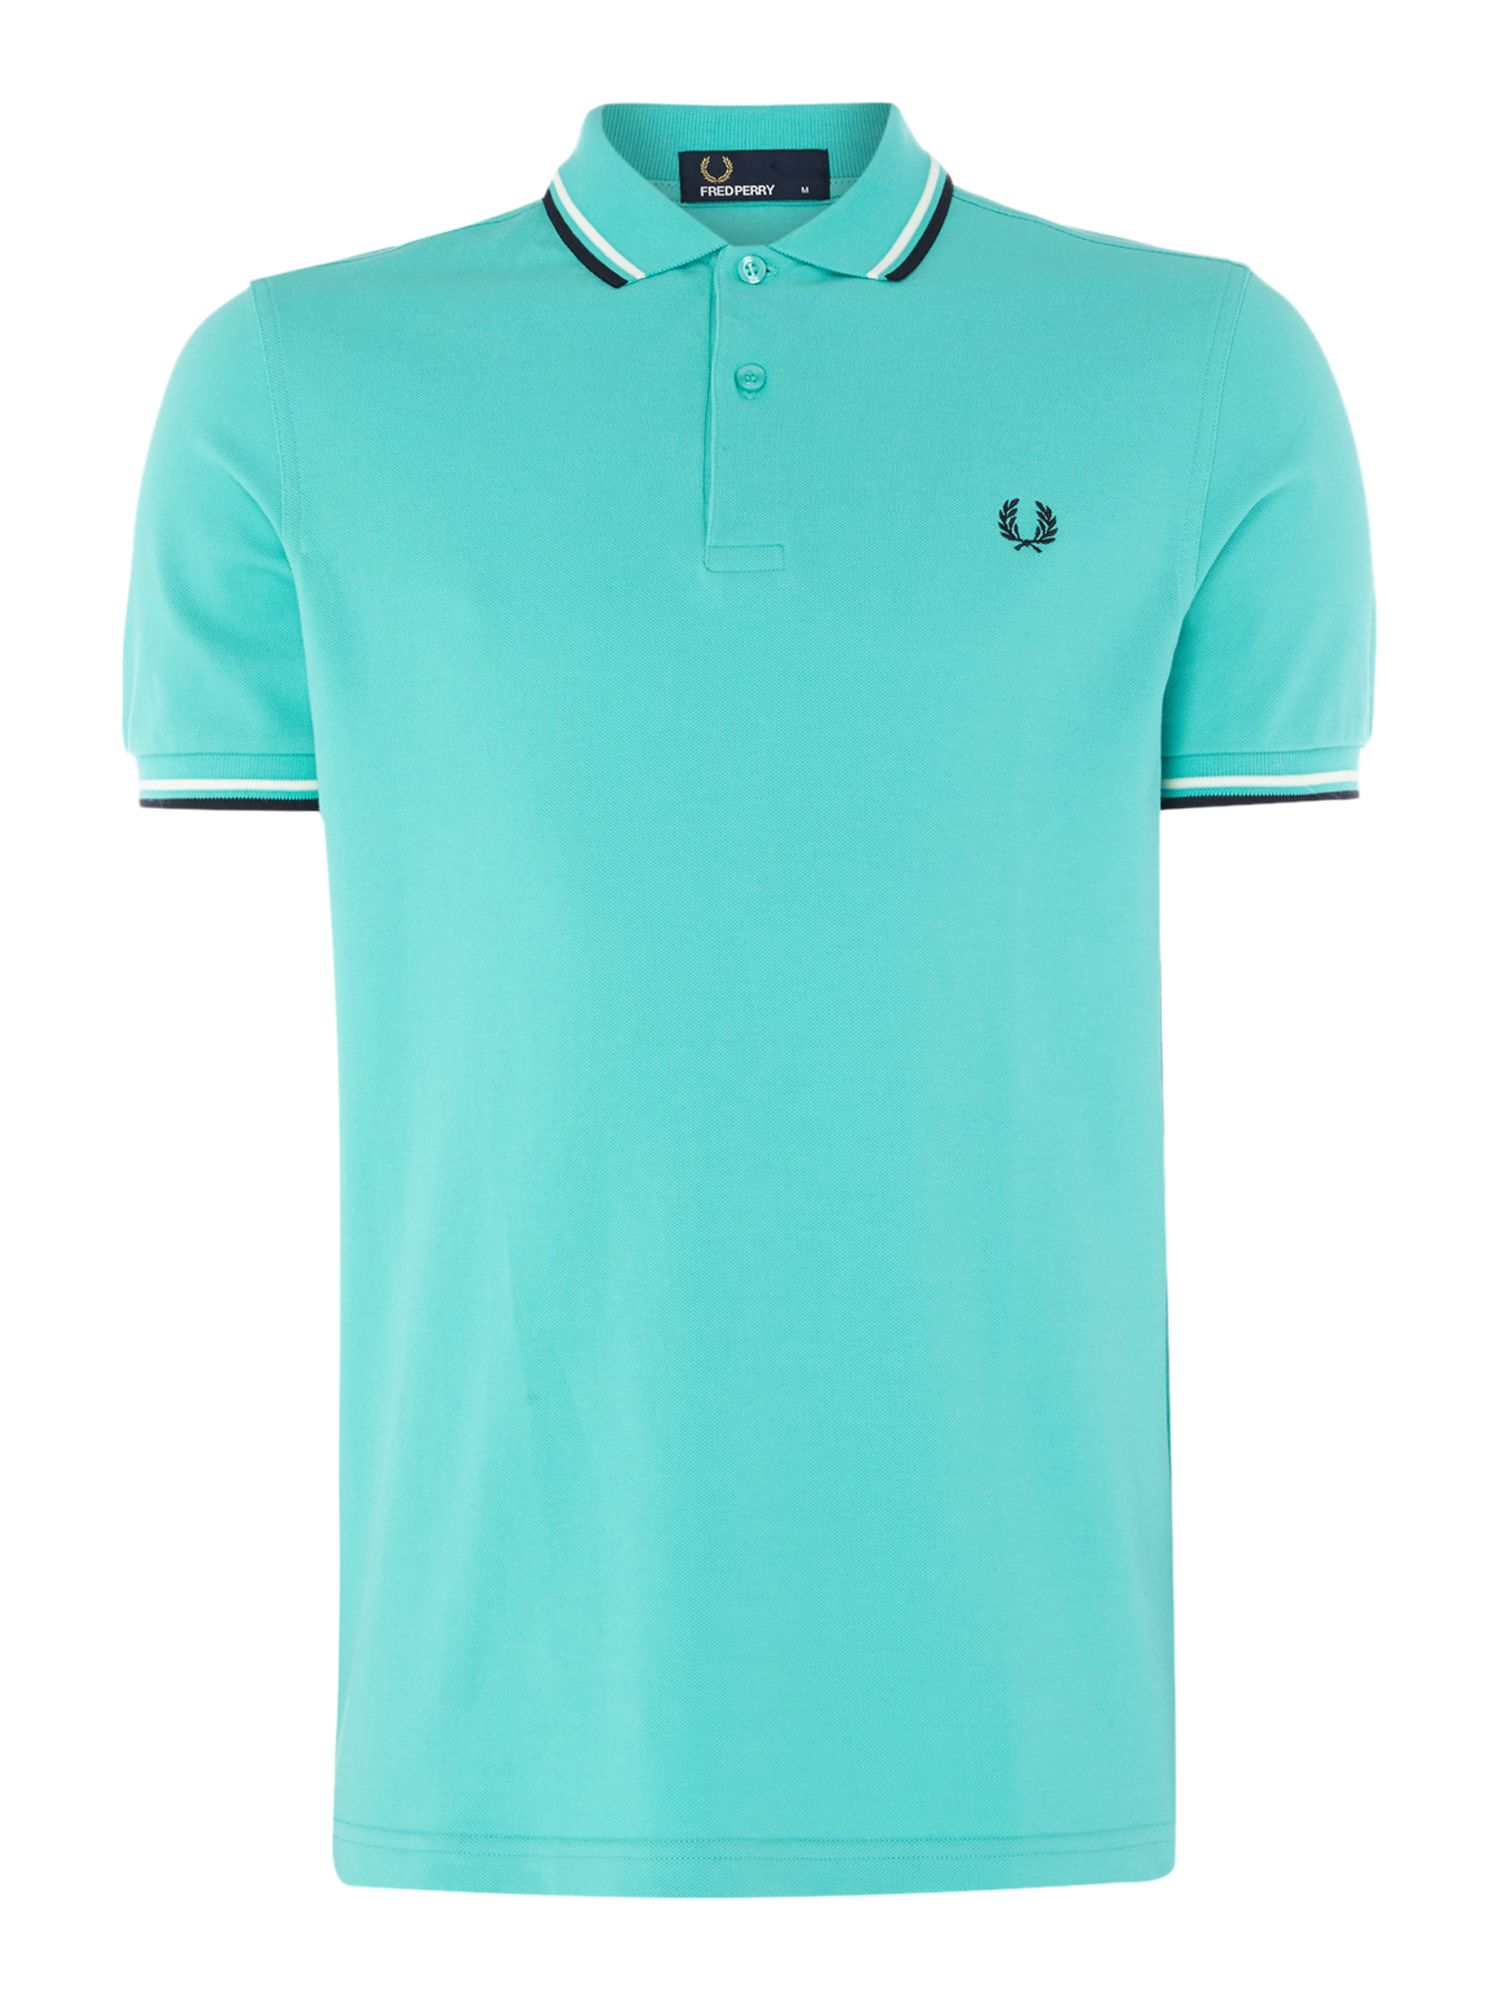 Men's Fred Perry Plain Twin Tipped Polo Shirt, Mint